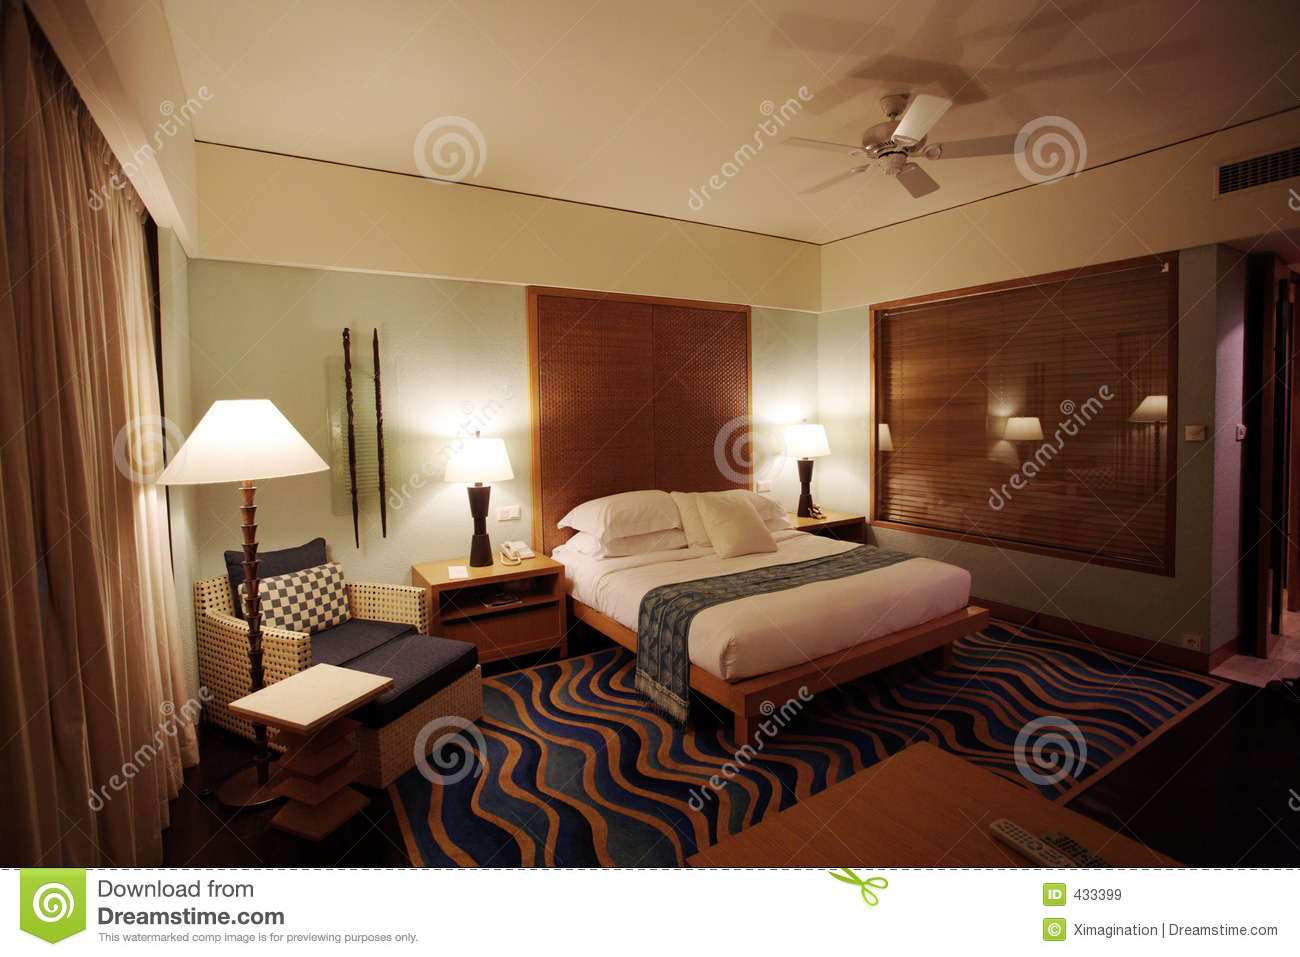 Royalty free stock photo download five star hotel bedroom